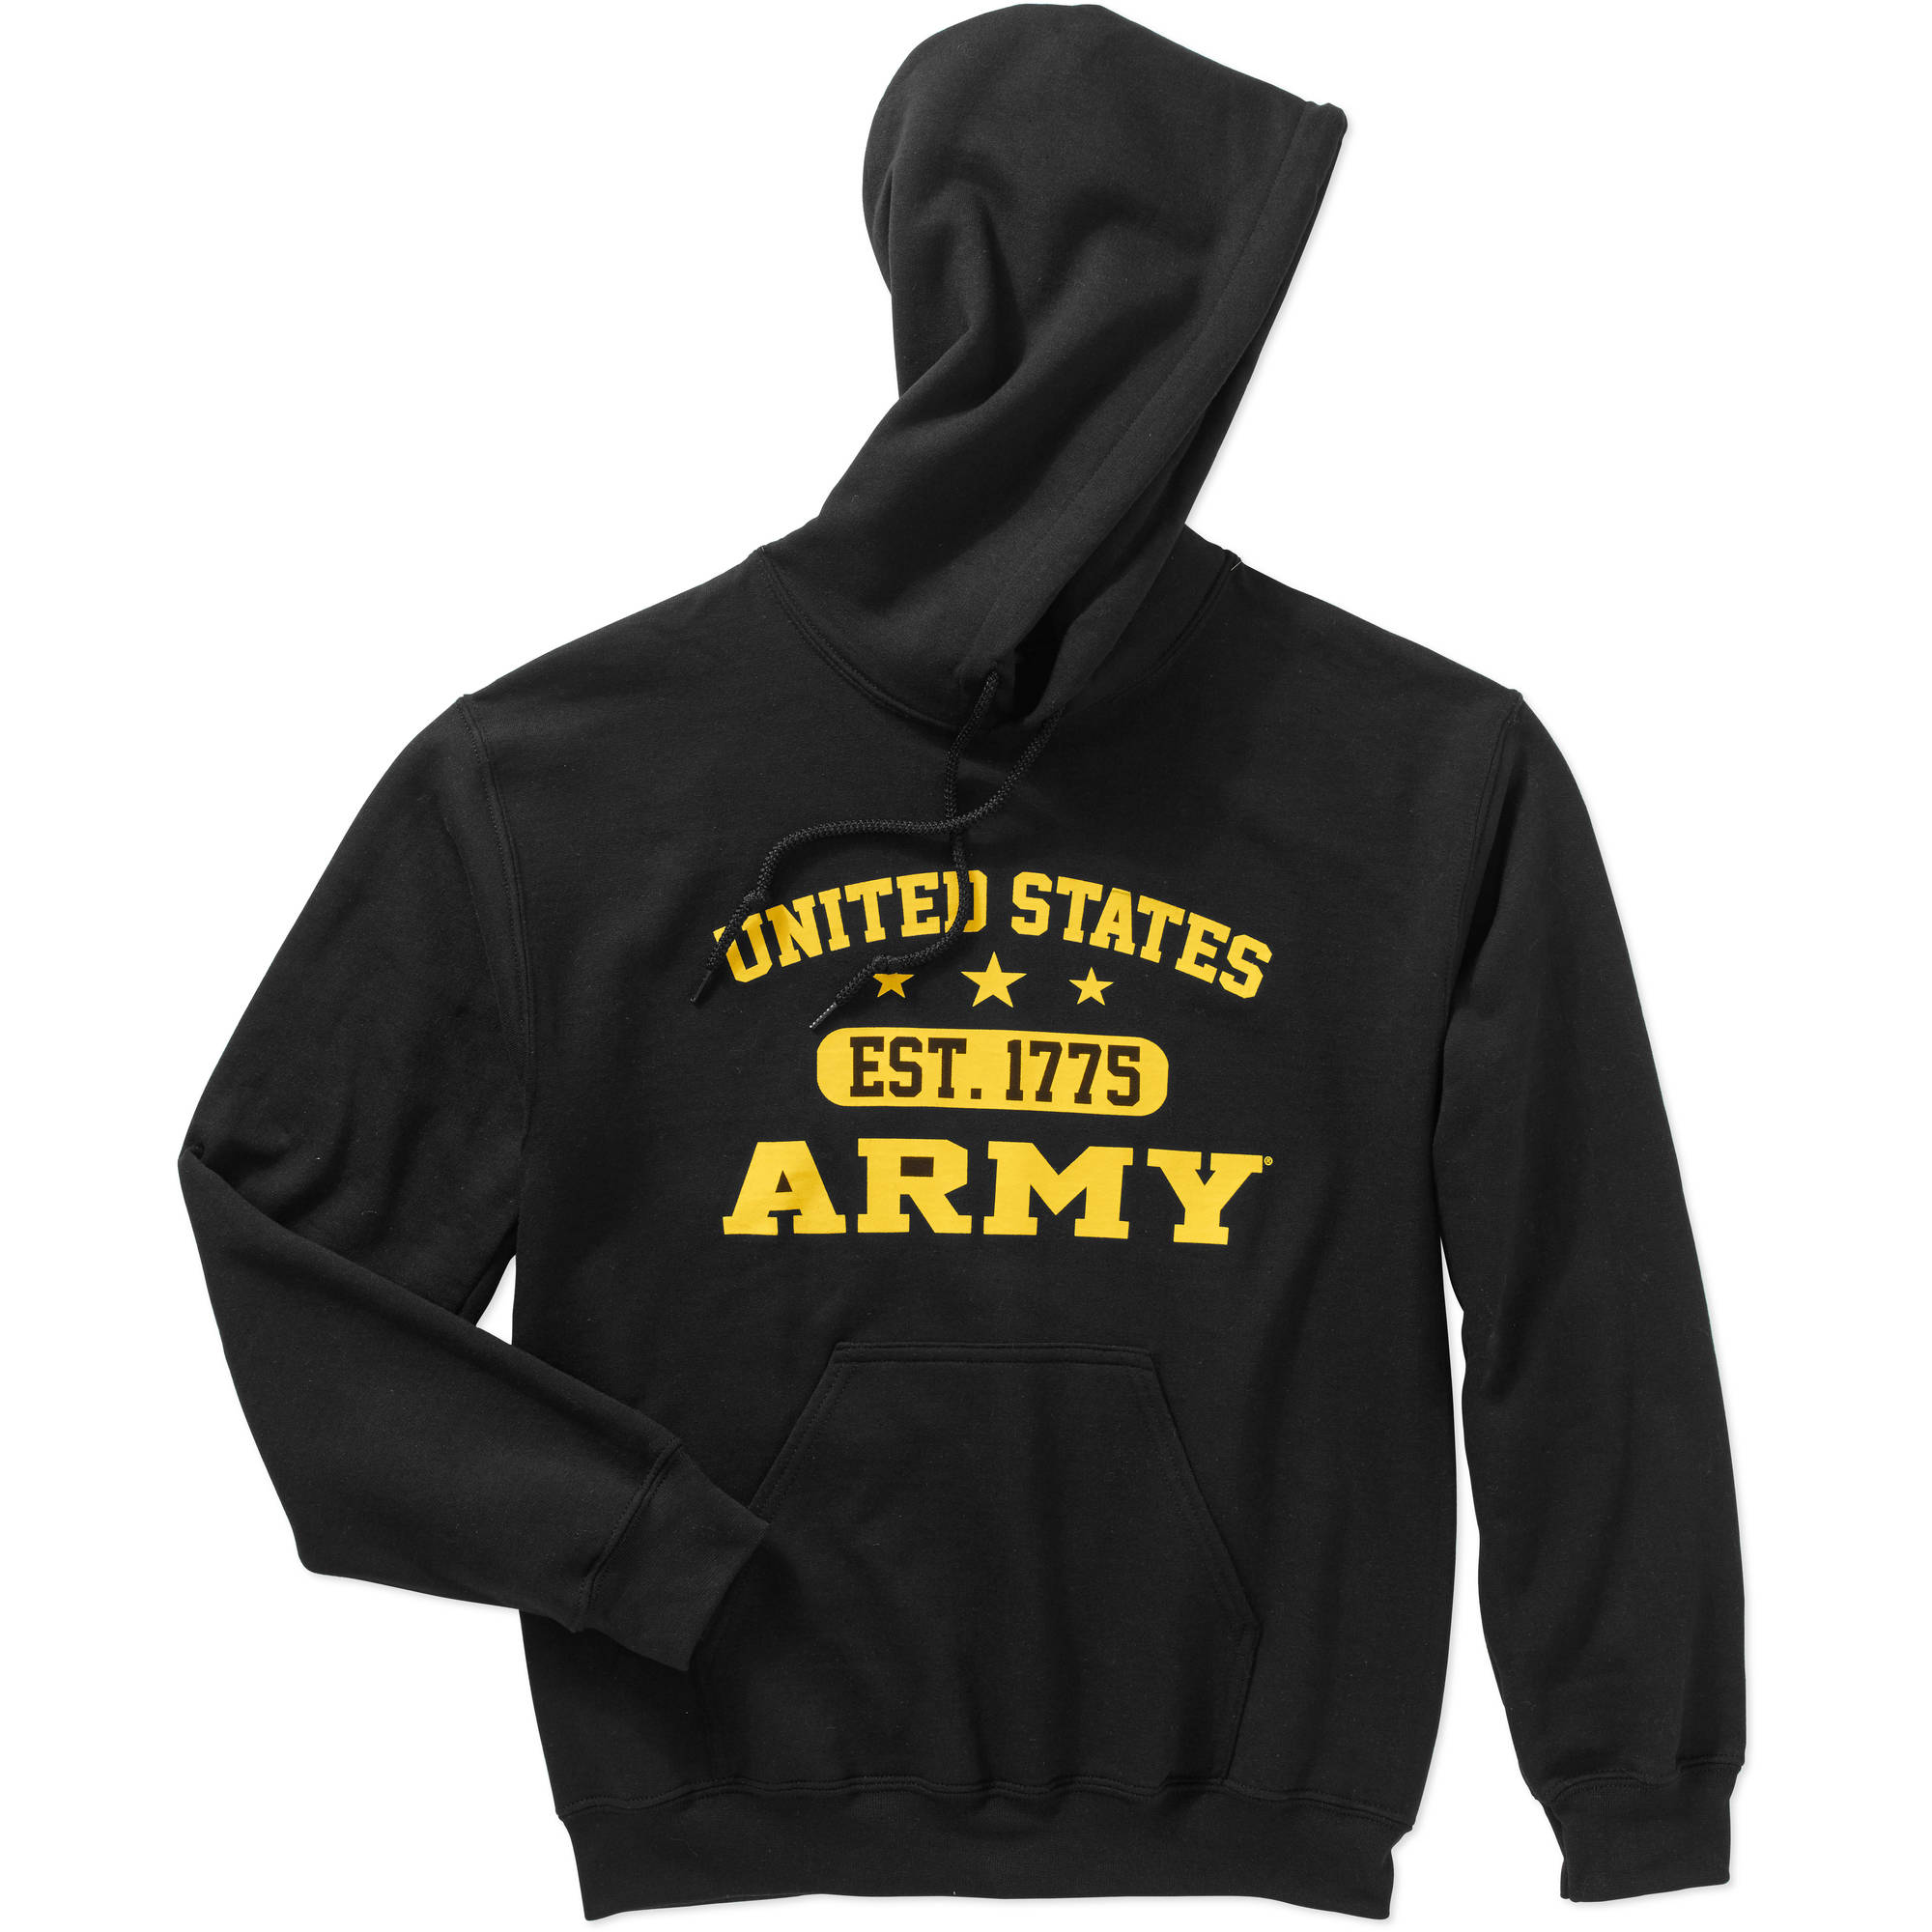 Big Men's Military Officially Licensed Fleece Traditional Hoodie, 2XL